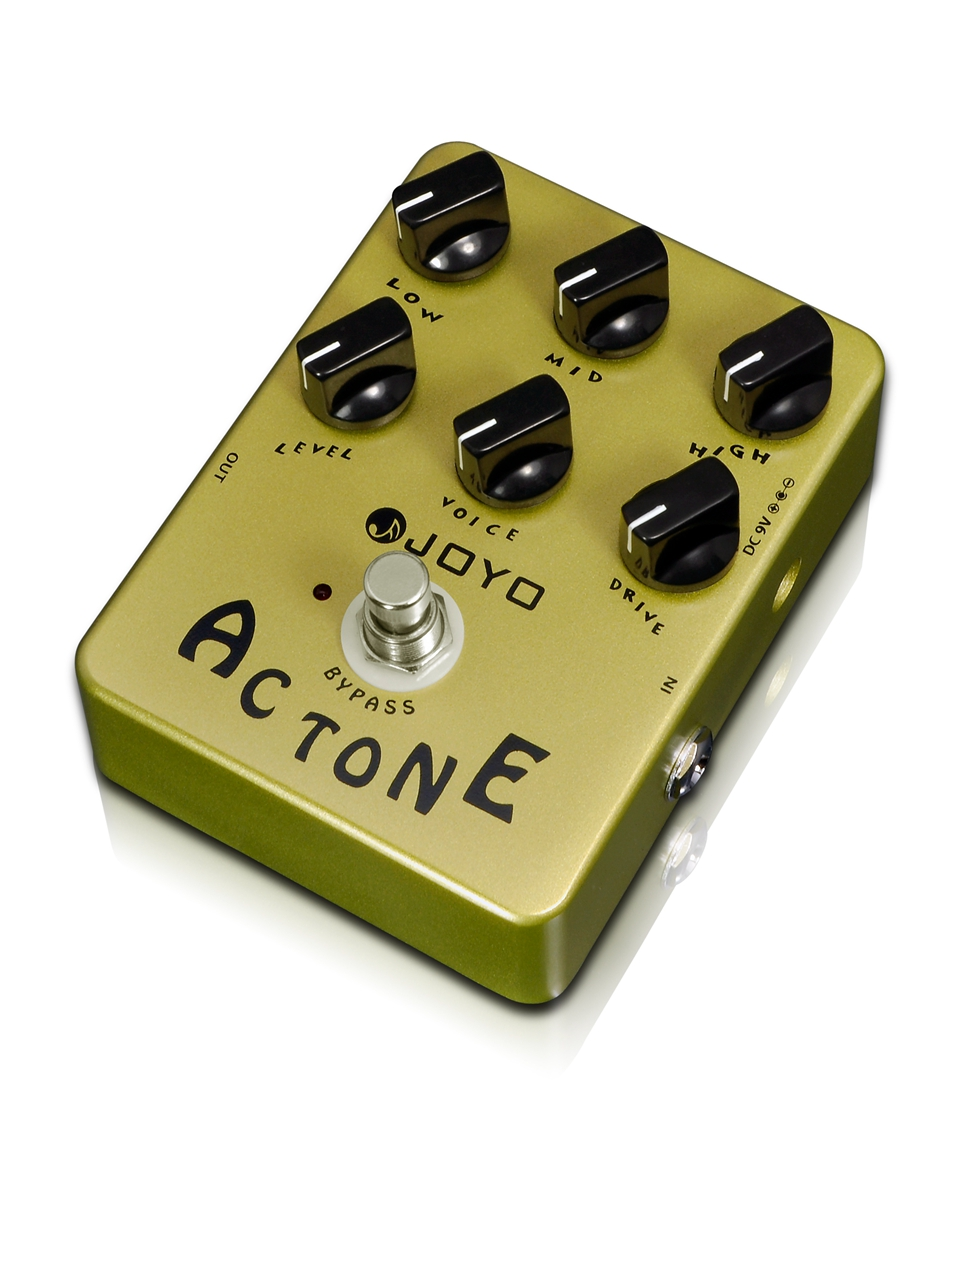 JOYO AC Tone Guitar Effect Pedal Classic Rock Sound British Rock - آلات موسیقی